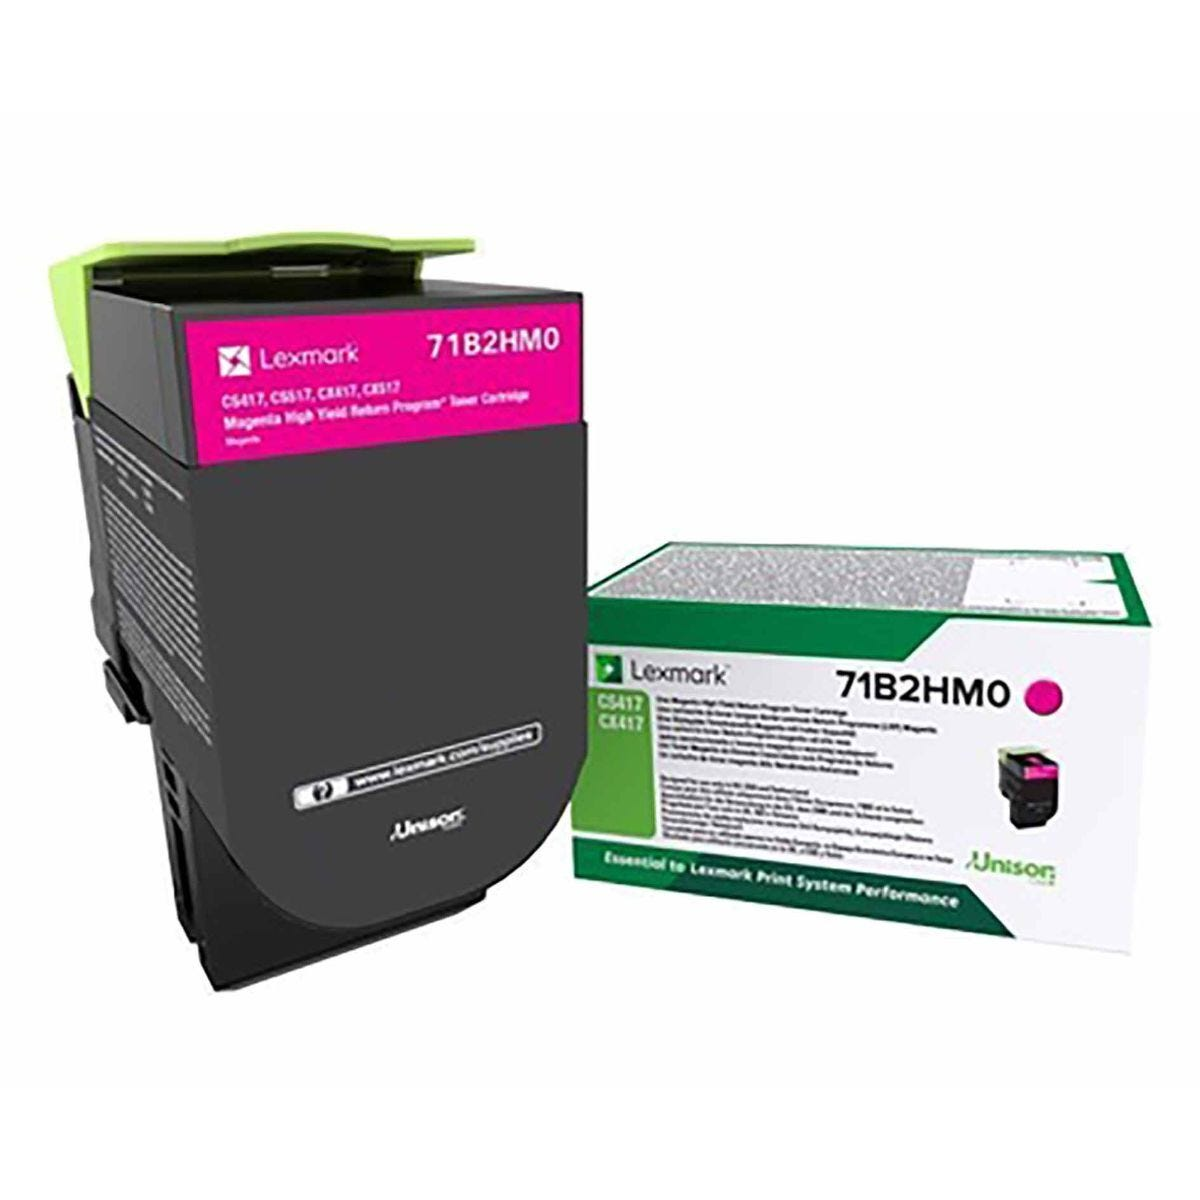 Lexmark 71B2HM0 High Yield Magenta Original Toner Cartridge